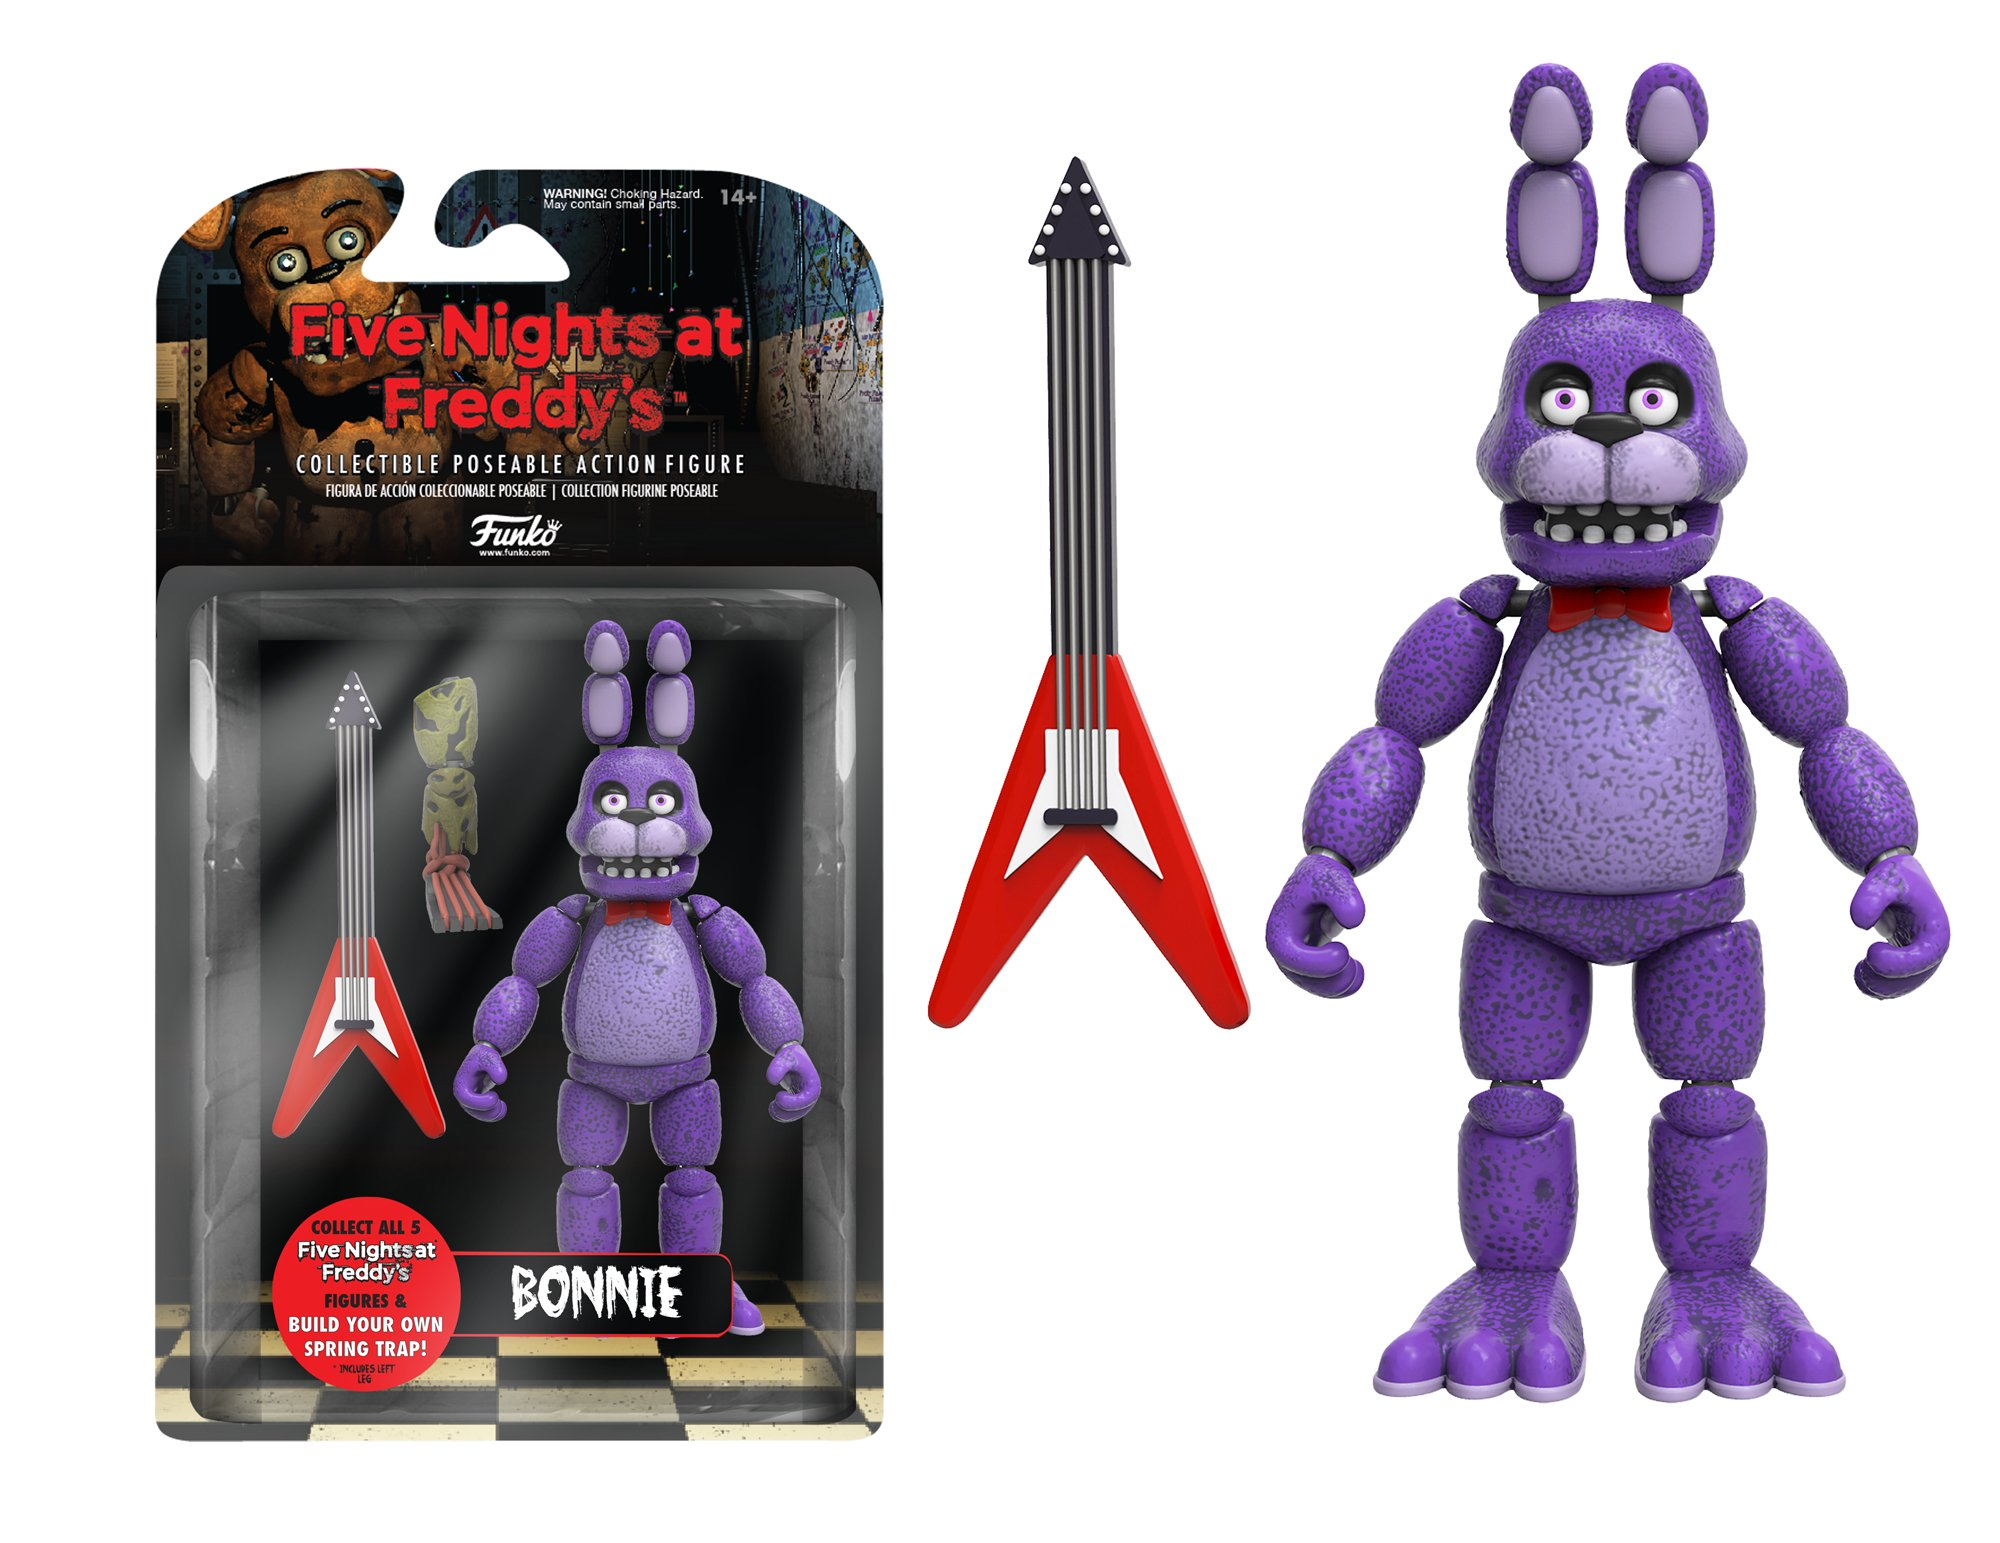 Funko Five Nights at Freddy's Articulated Bonnie Action Figure, 5''